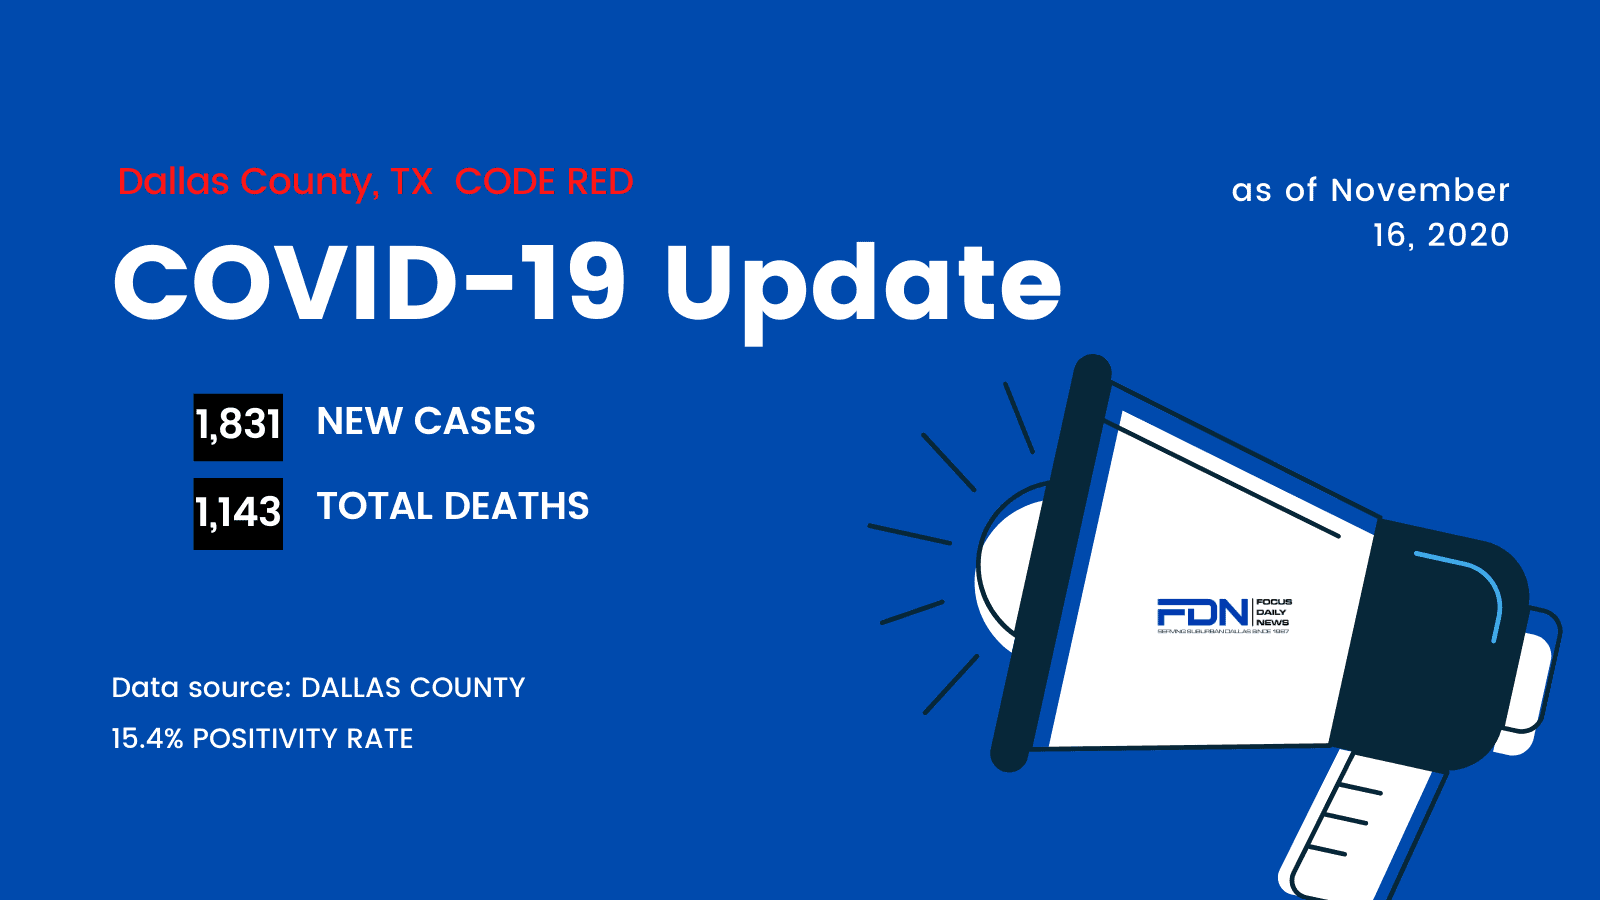 COVID-19 Spikes In Dallas County With 1,831 New Cases